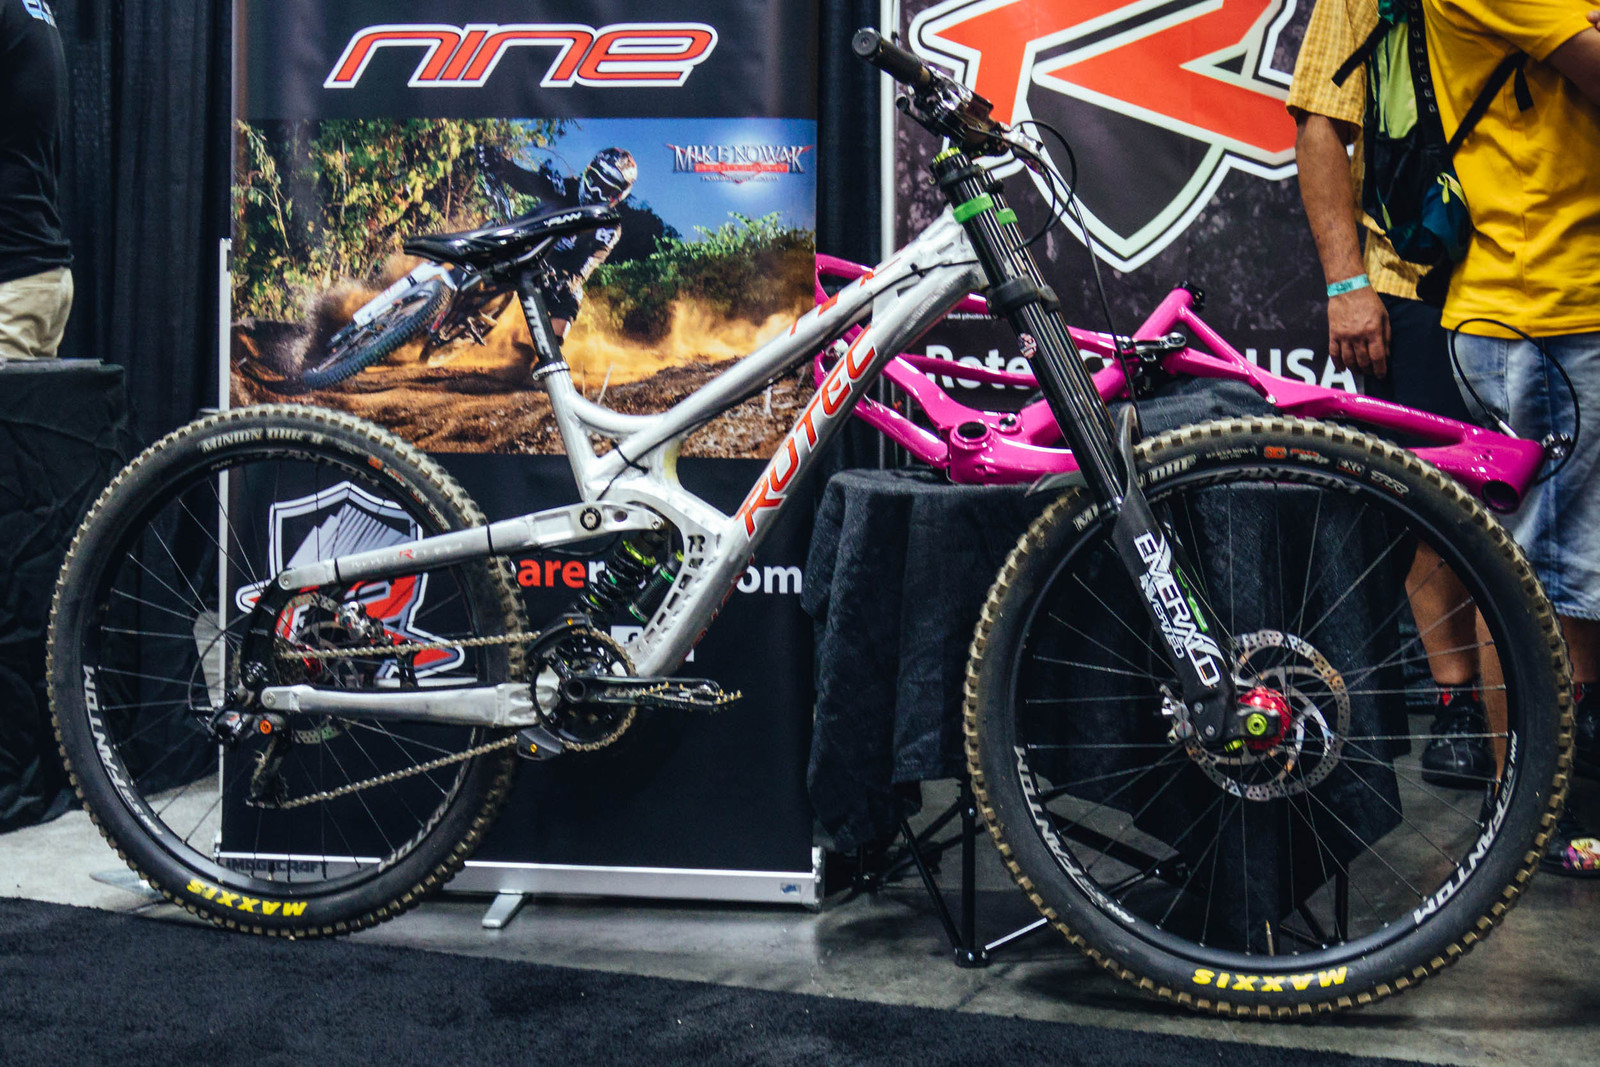 Concentric BB Pivot and Unique Suspension Design on Rotec's Nine and Twentynine DH Bikes